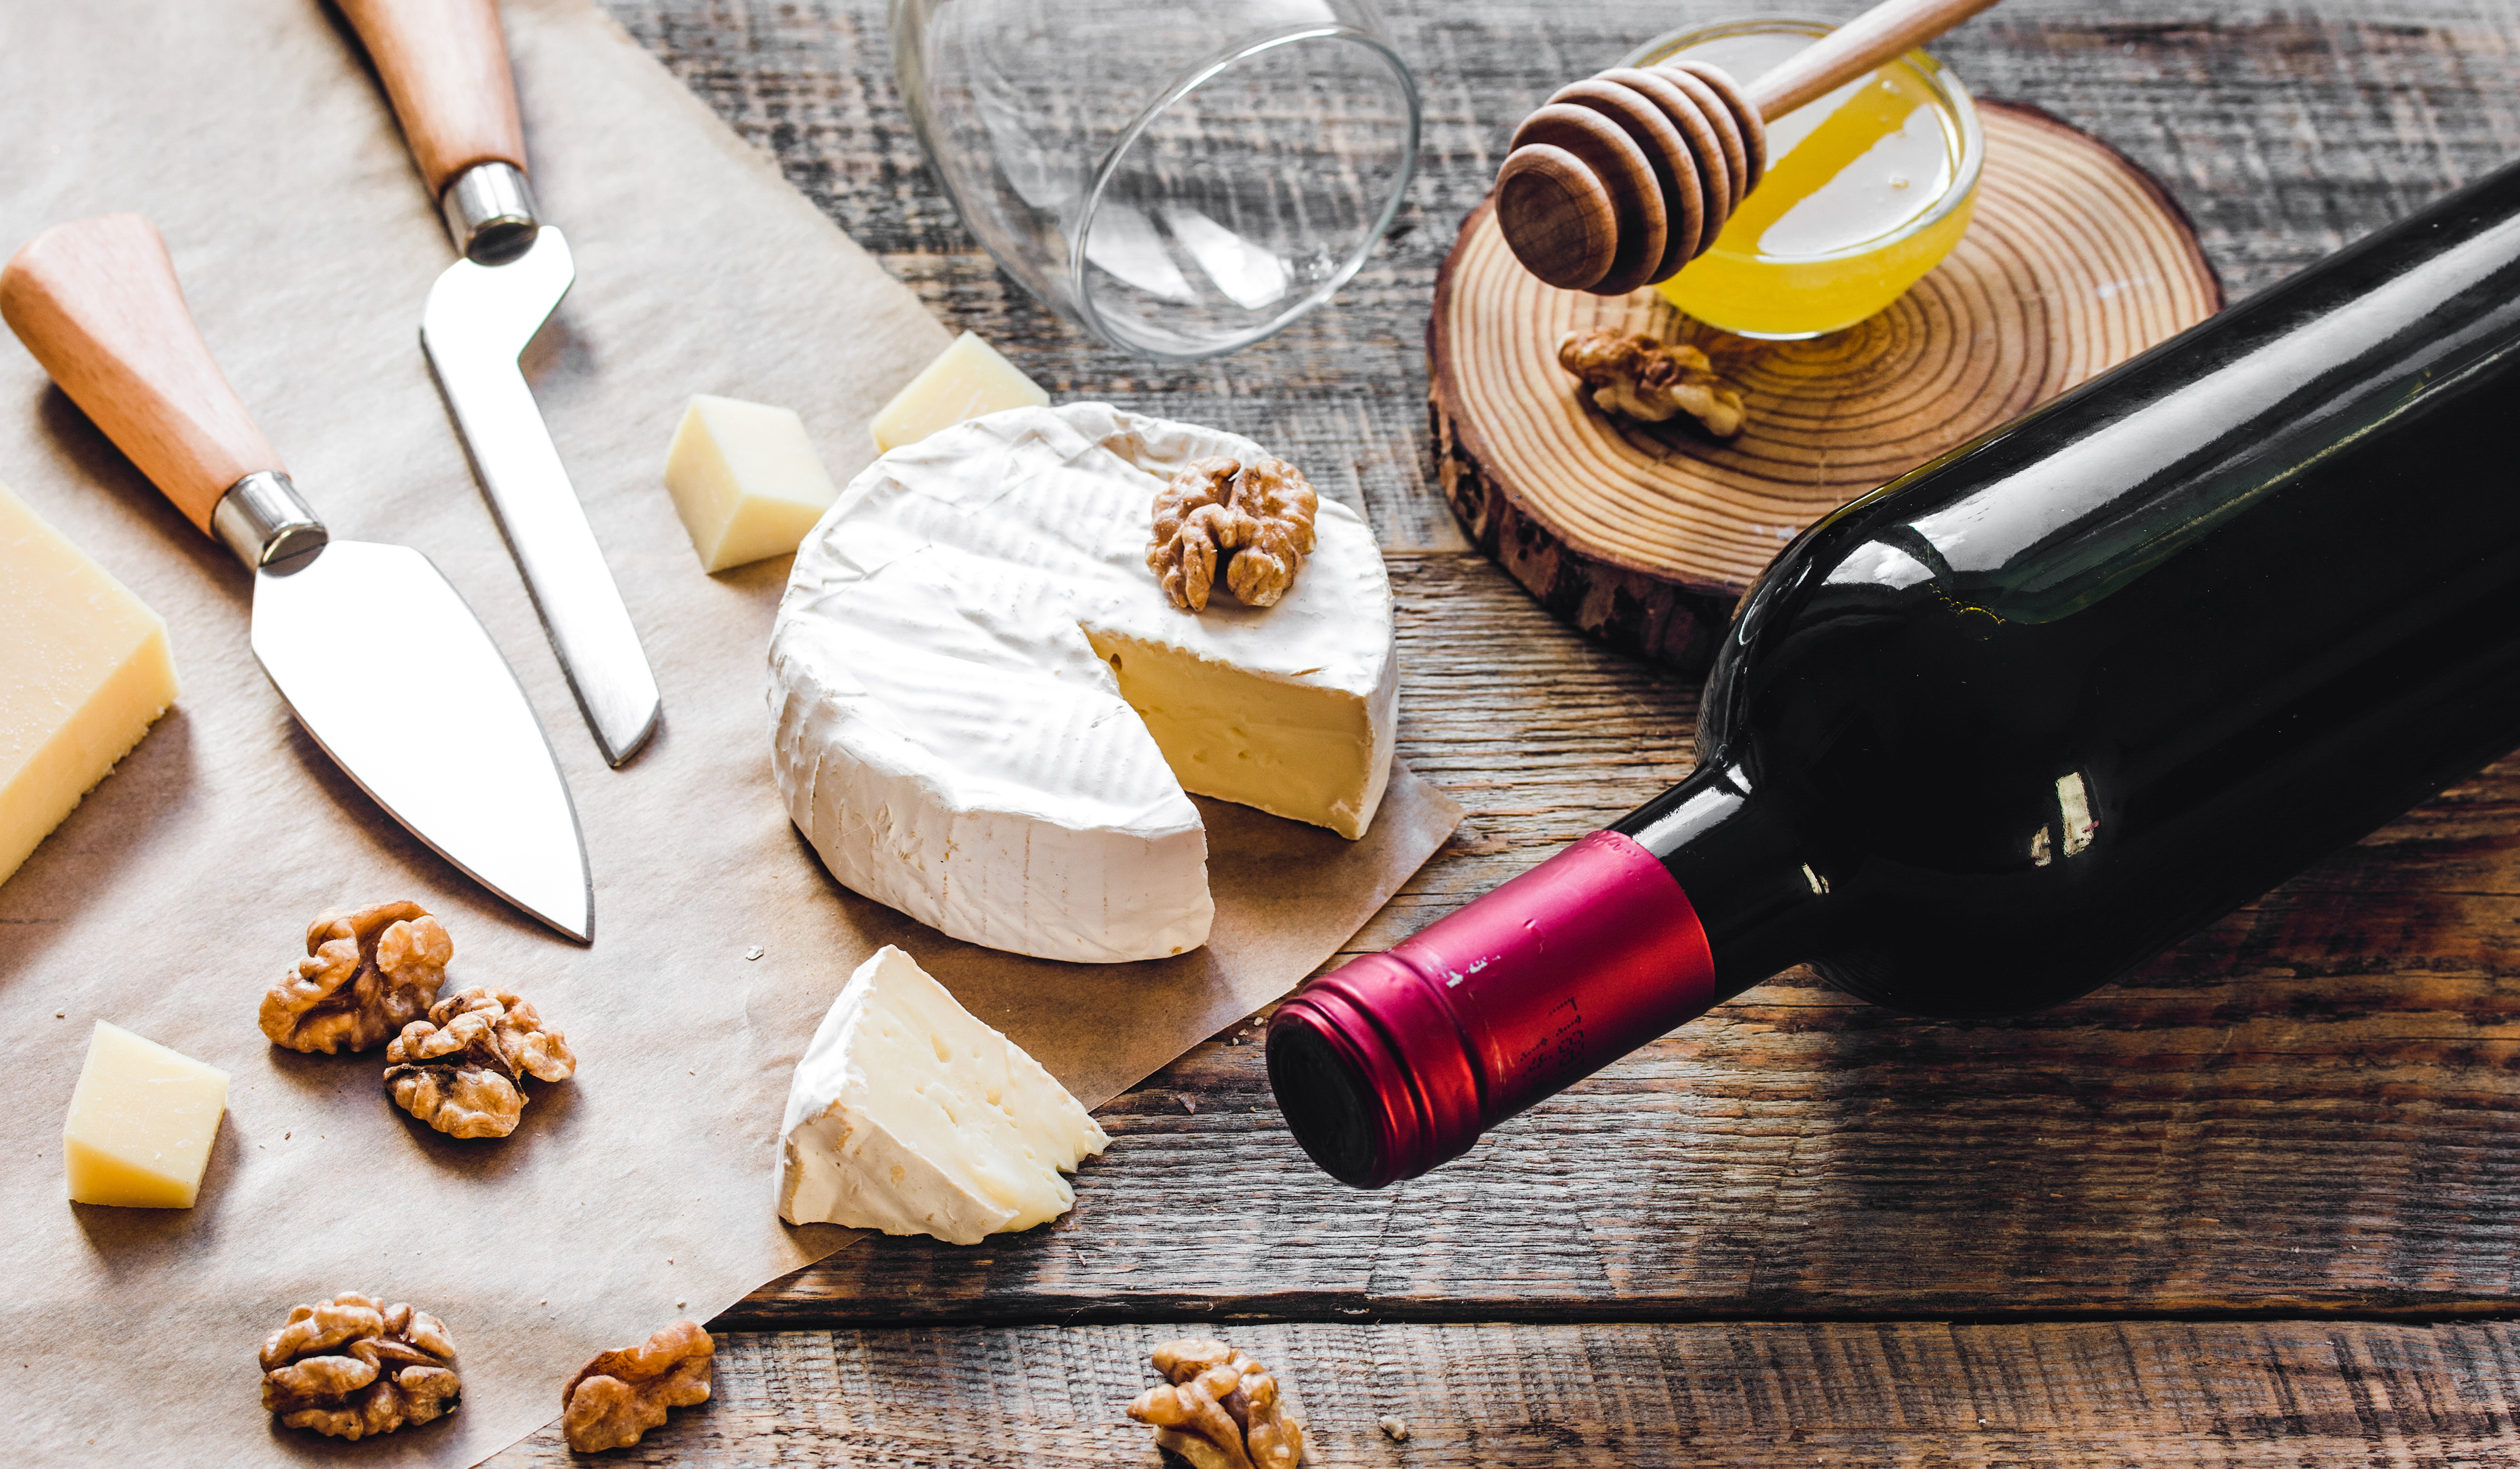 A spread of cheese, honey, and a wine bottle.